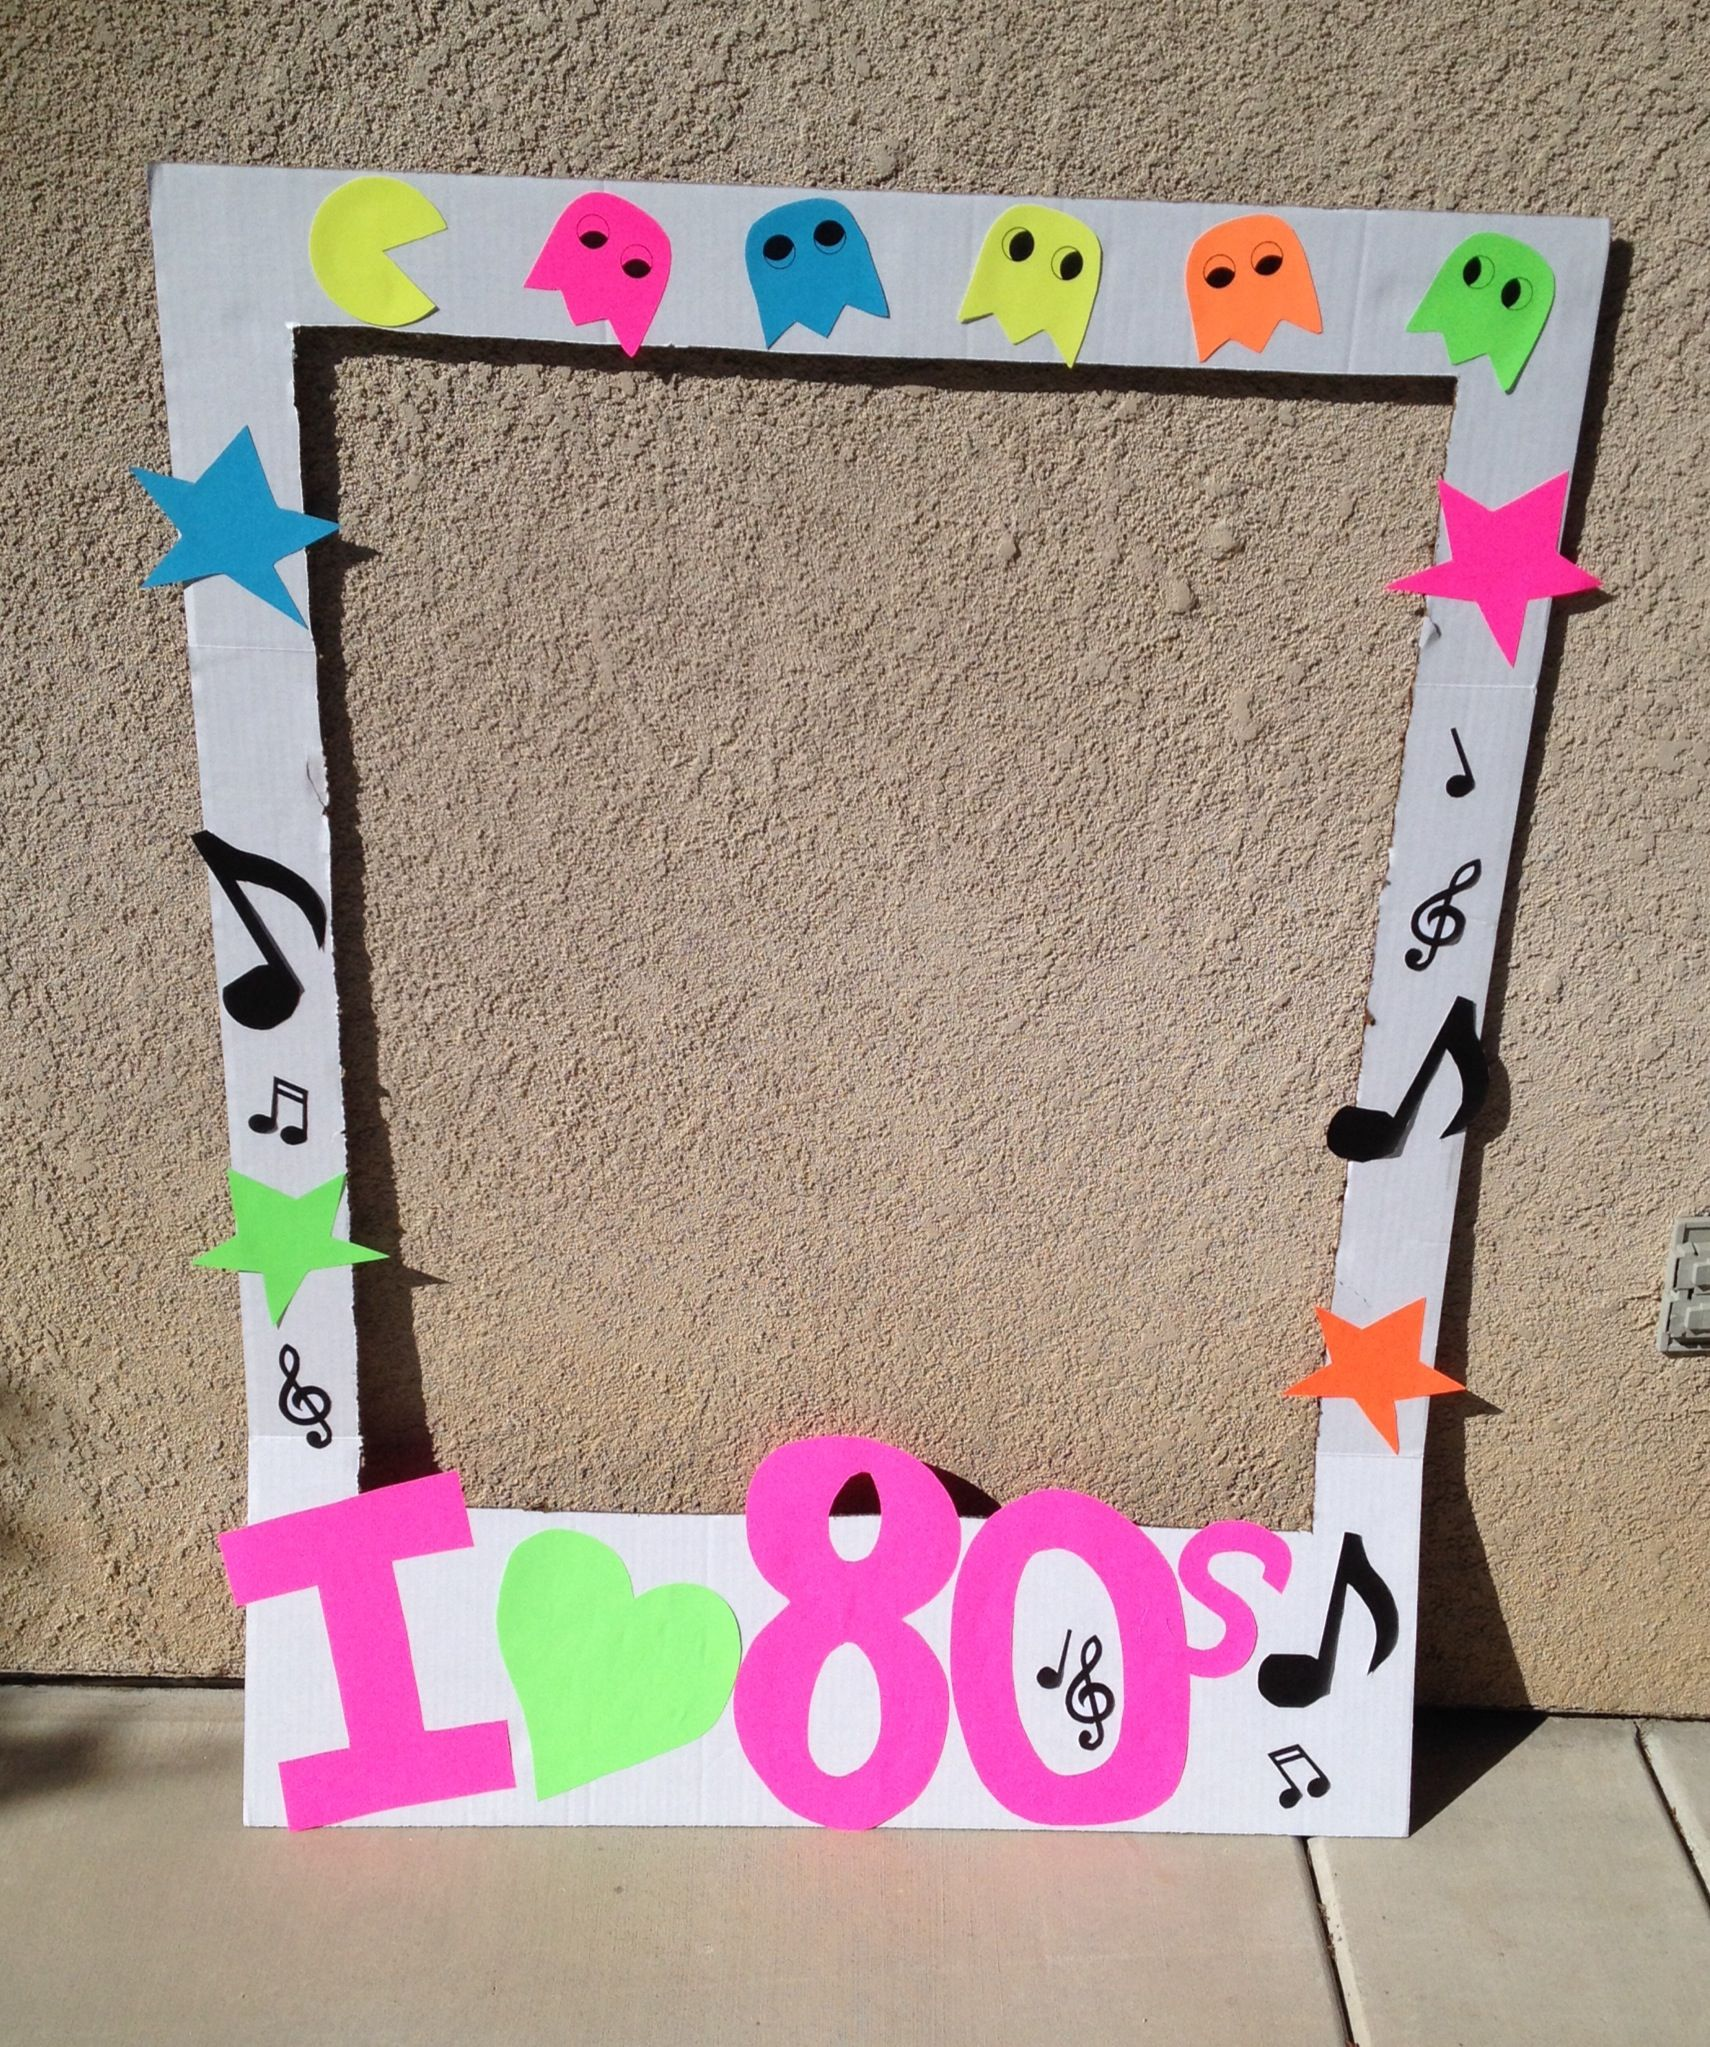 80 39 s polaroid photo booth 80 39 s theme party pinterest photo booths photo booth props and. Black Bedroom Furniture Sets. Home Design Ideas